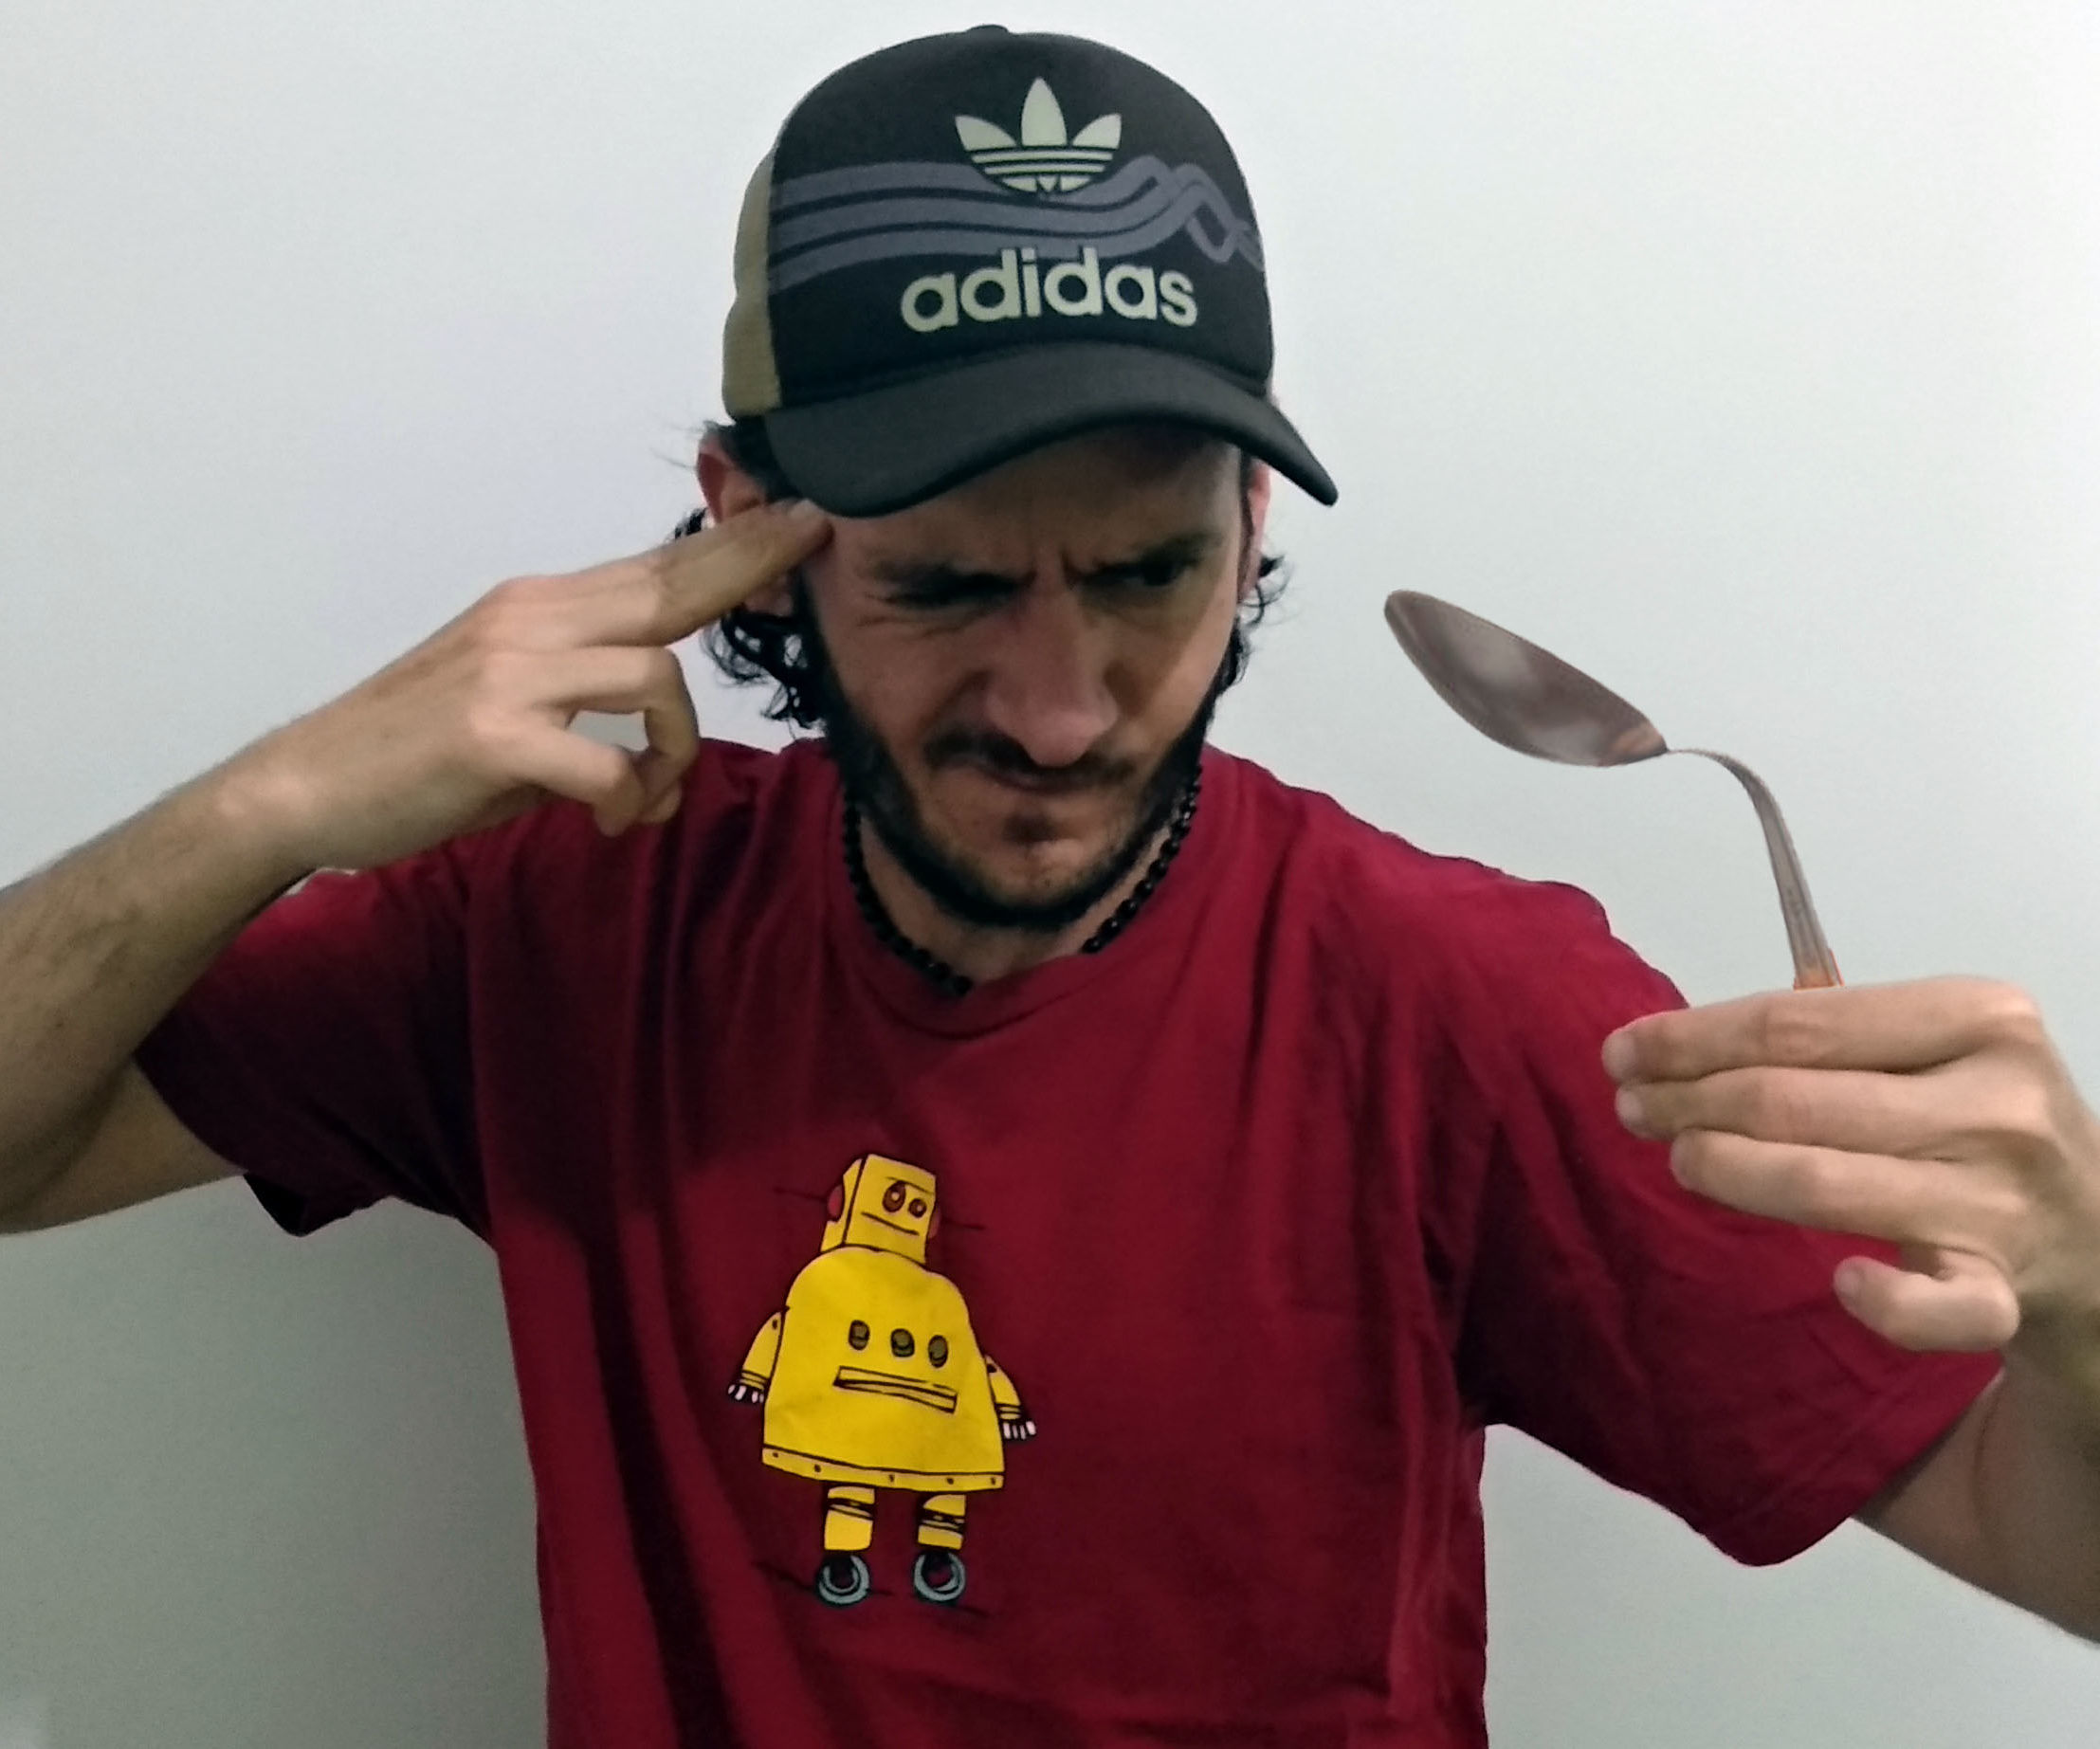 Bend Spoon With the Power of Their Mind!